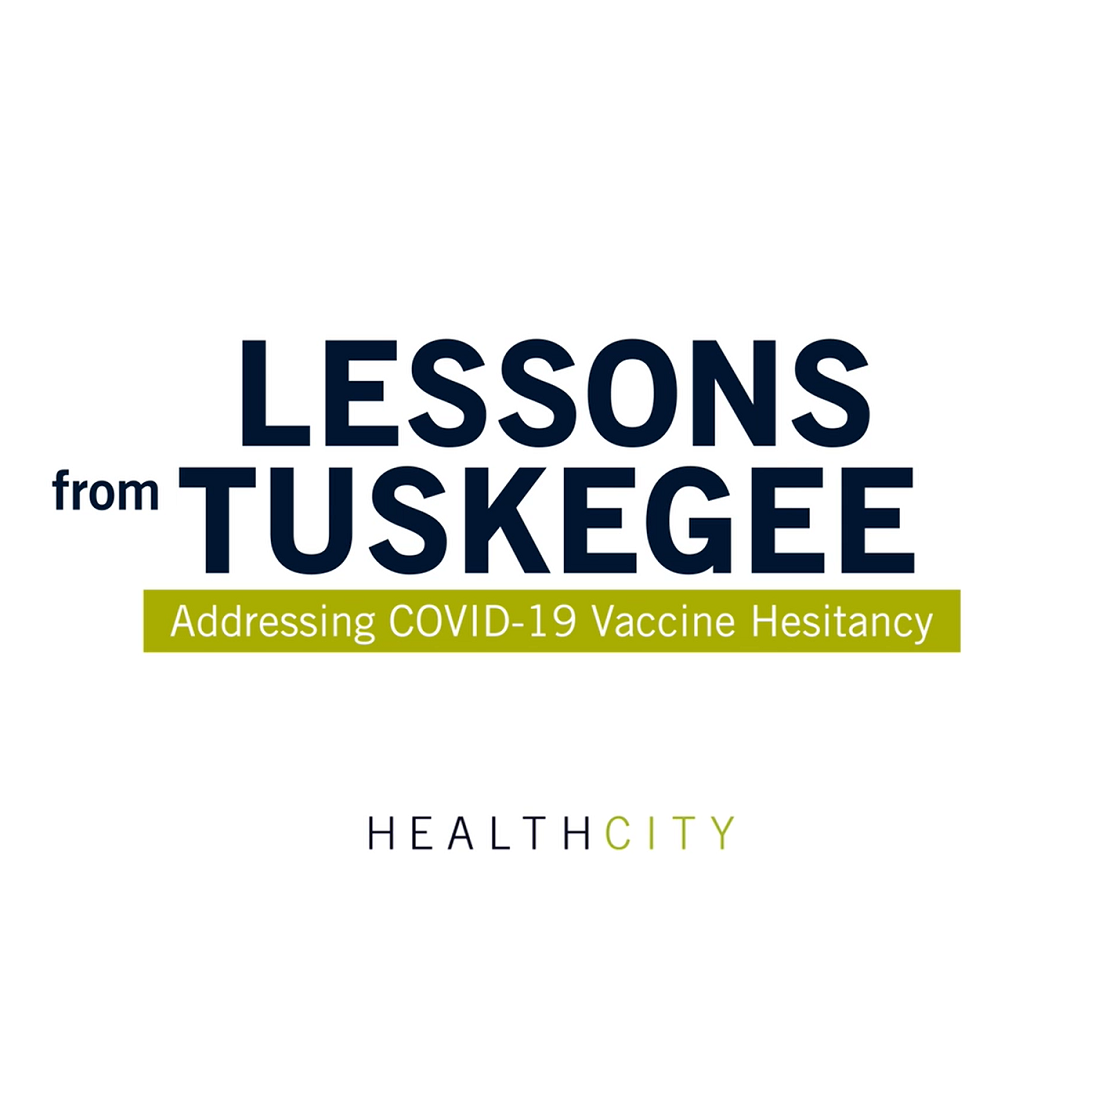 lessons from tuskegee for covid vaccine hesitancy text image